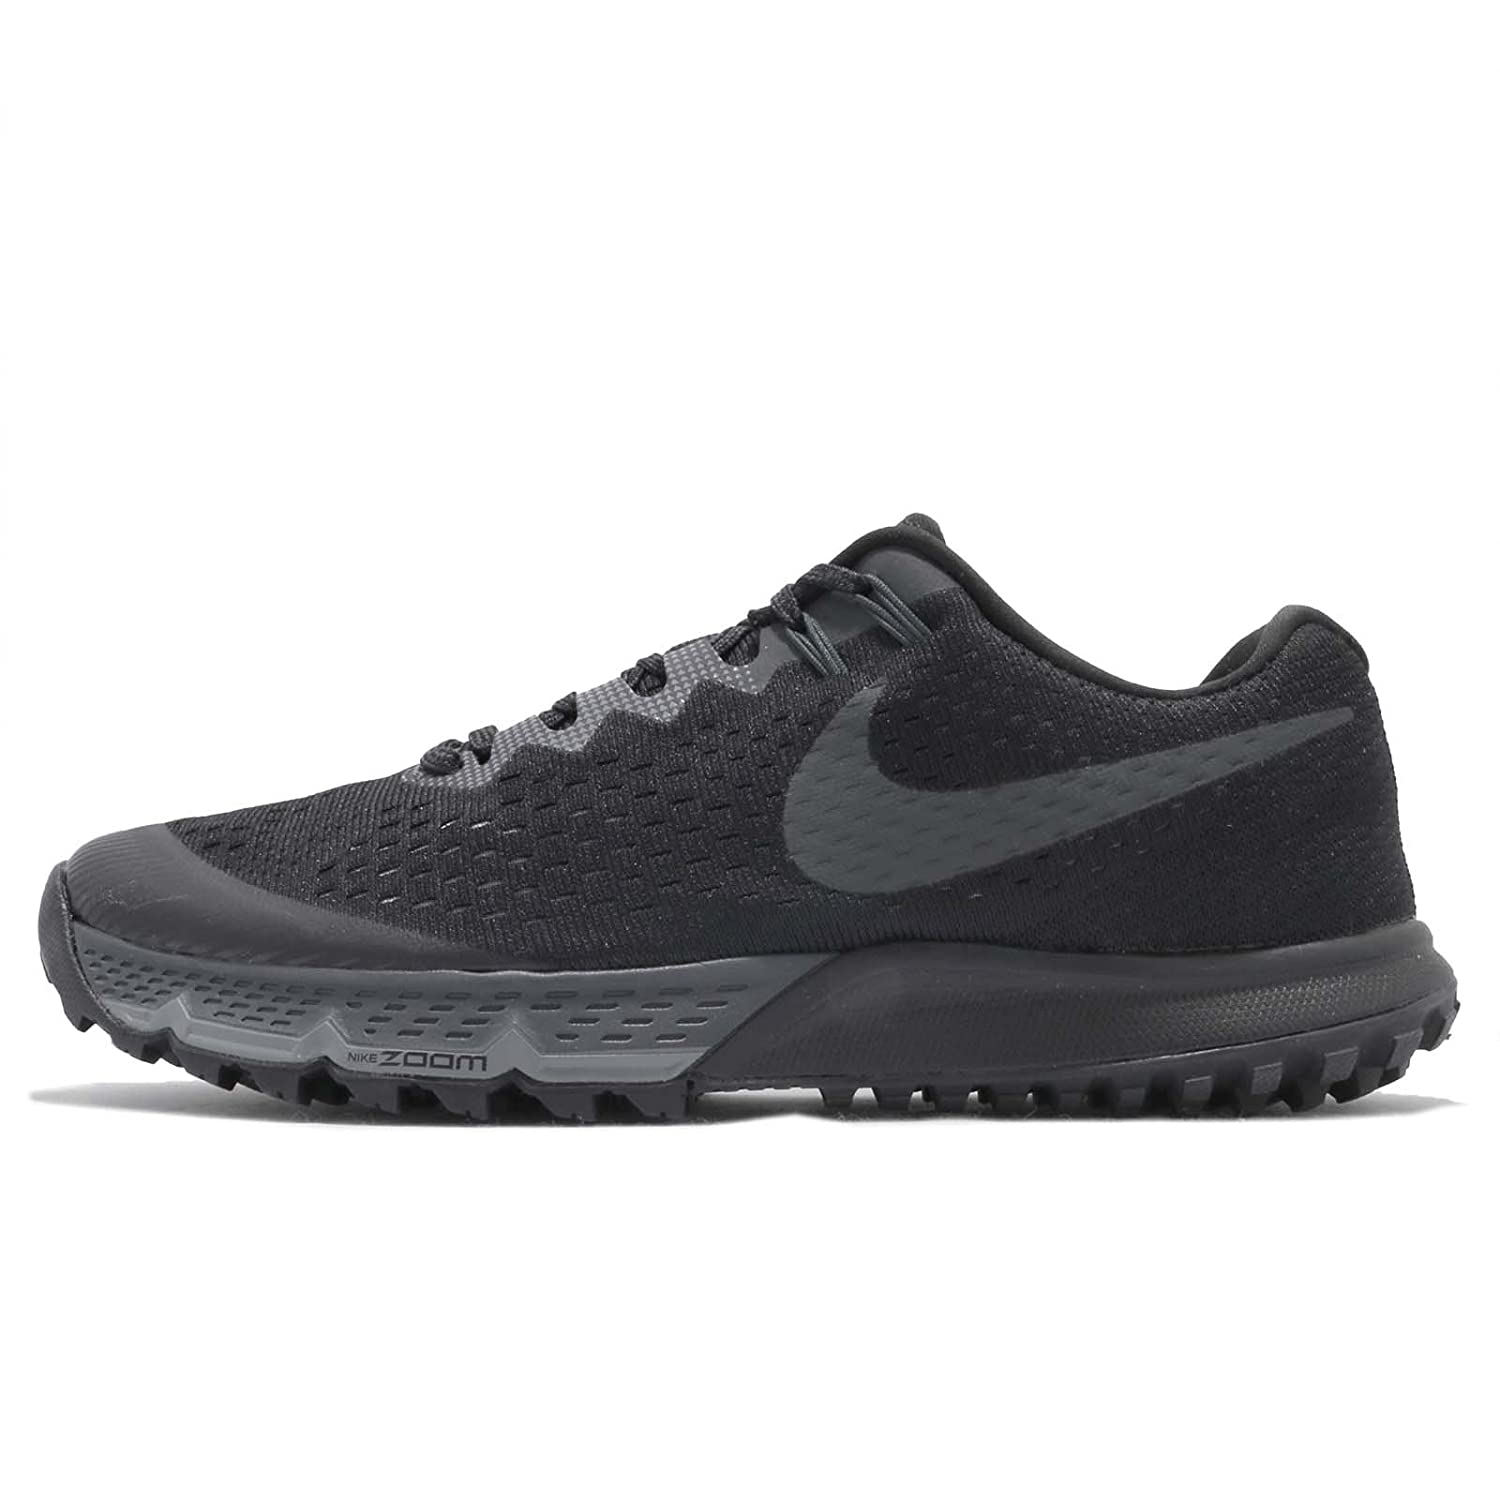 new arrival 286bf 2b096 Amazon.com   Nike Women s Air Zoom Terra Kiger 4 Running Shoe   Trail  Running